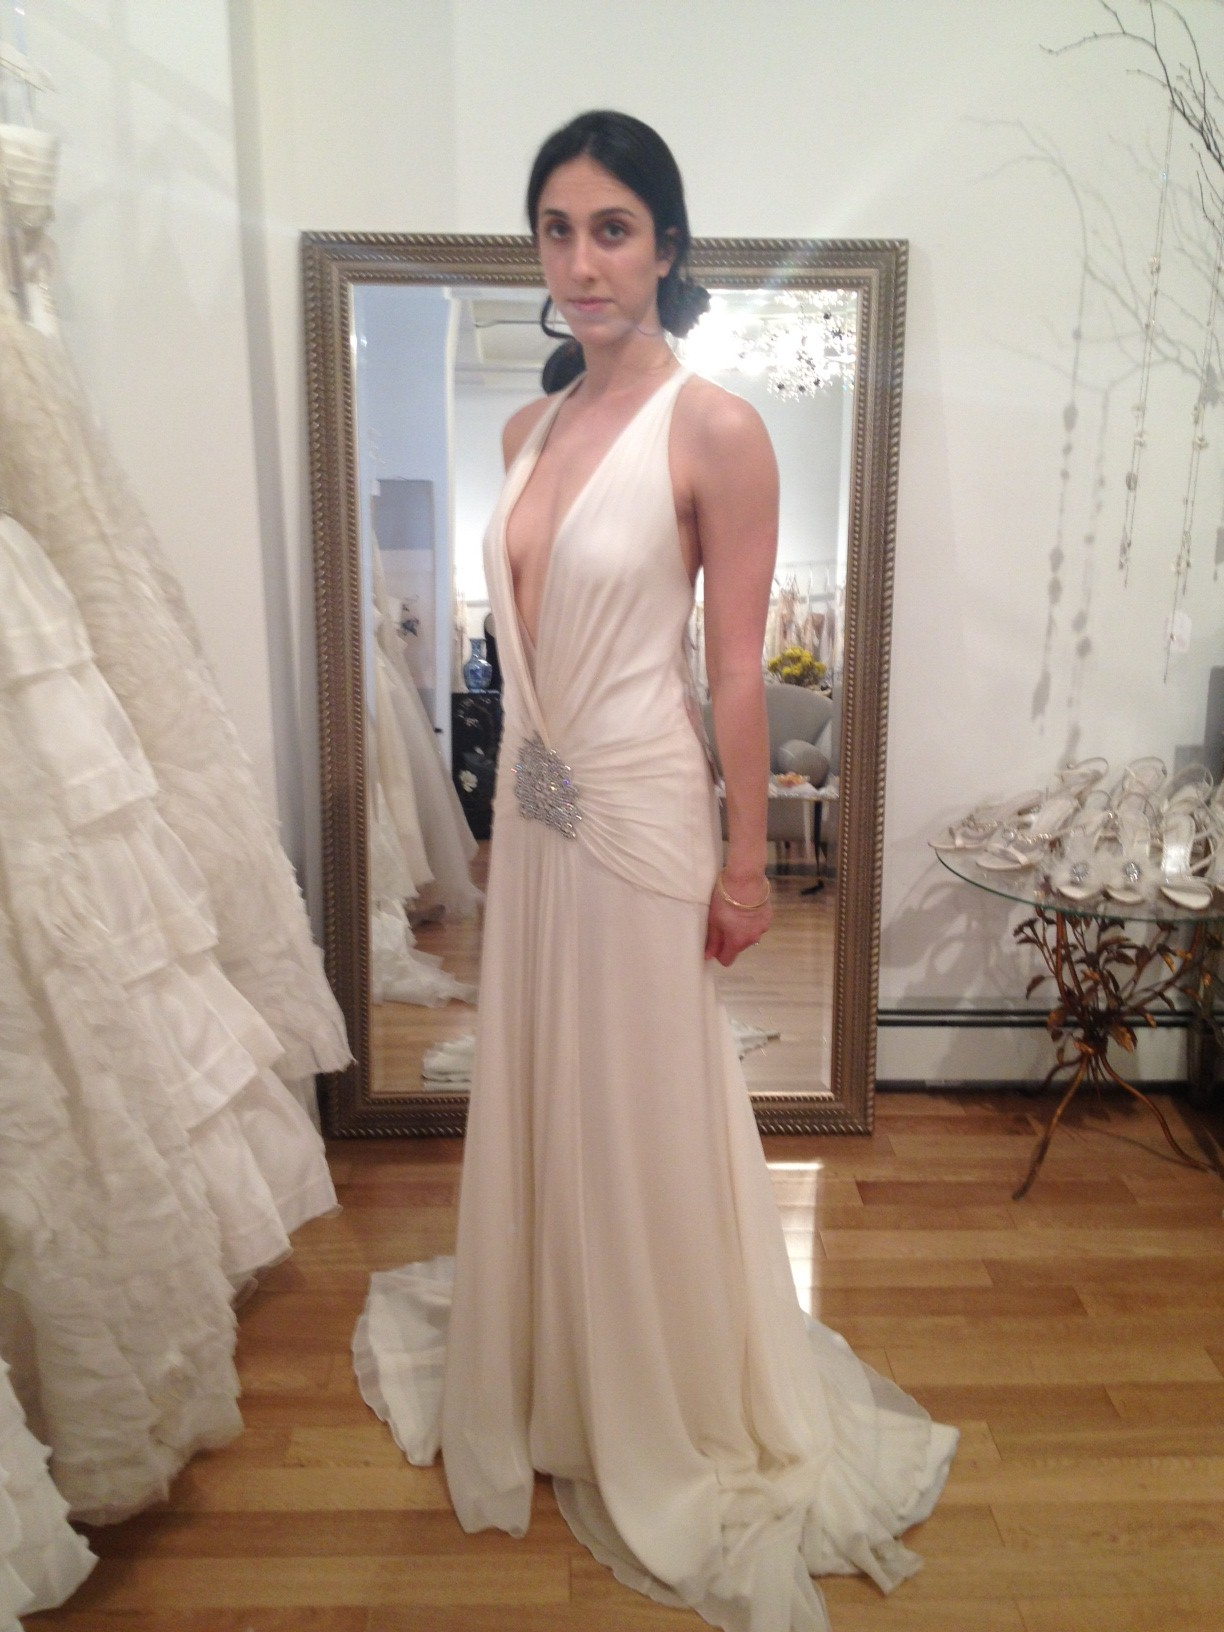 Bride arms and a wedding dress to go with them. — Lauren Hefez